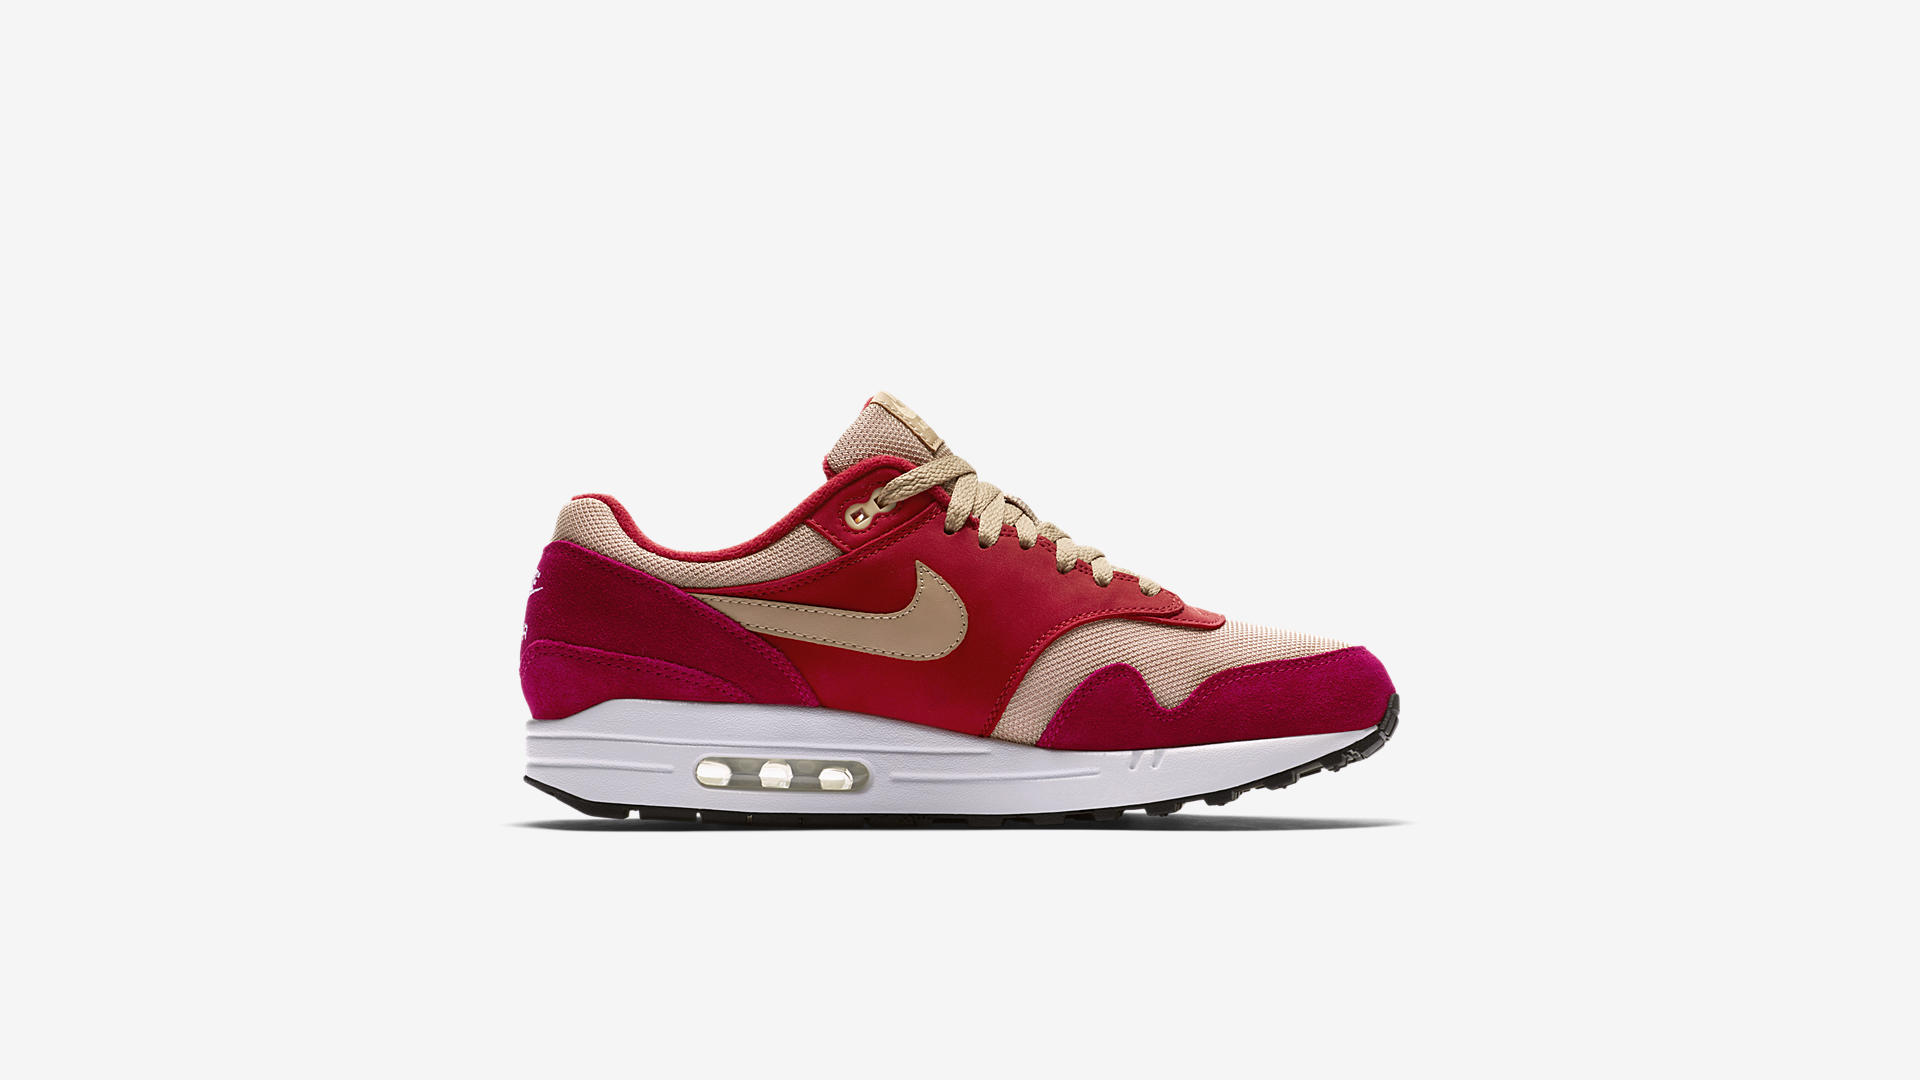 908366 600 Nike Air Max 1 Red Curry 3